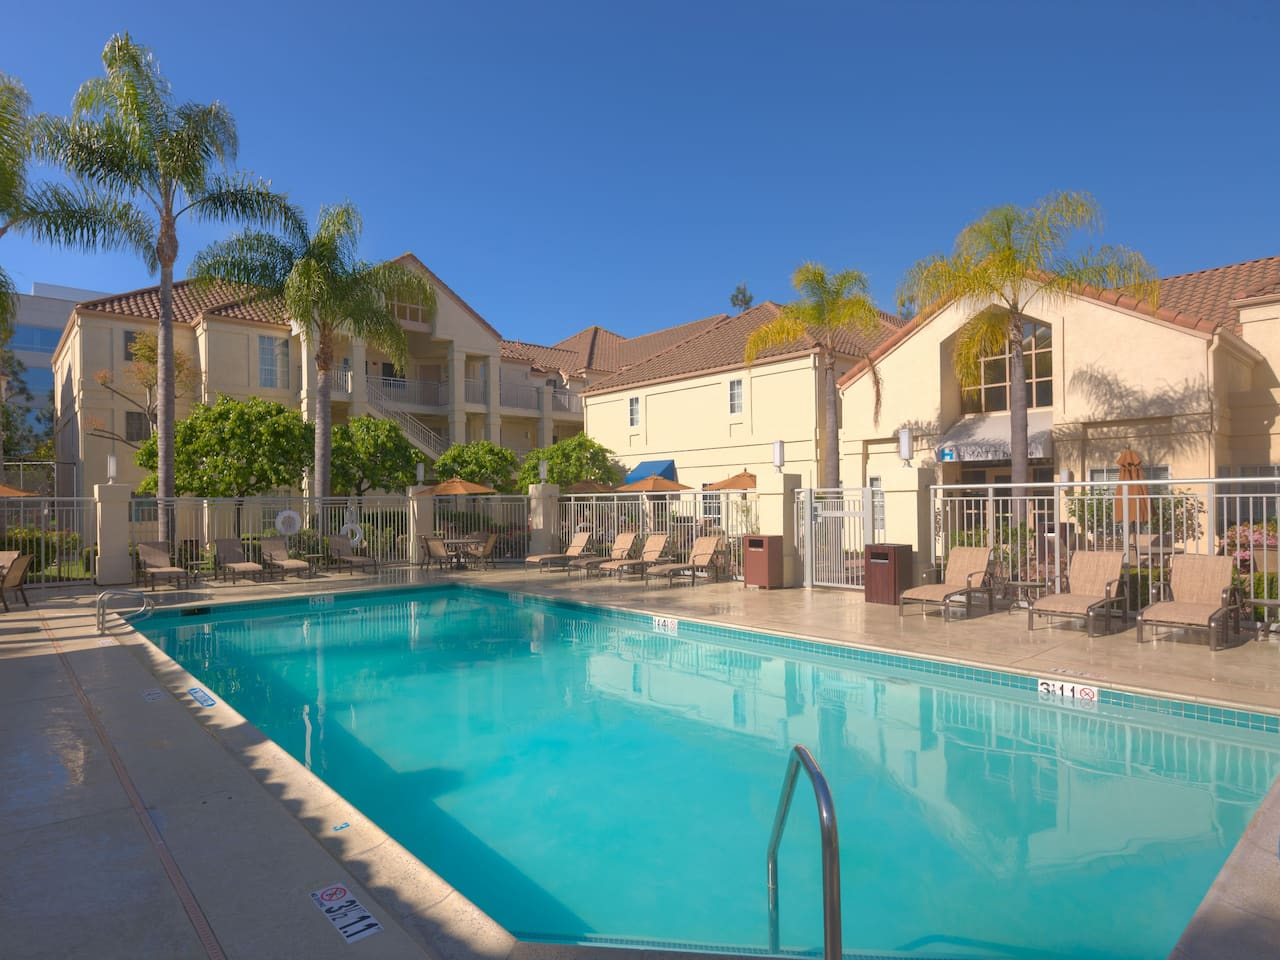 Hyatt House Los Angeles / El Segundo pool